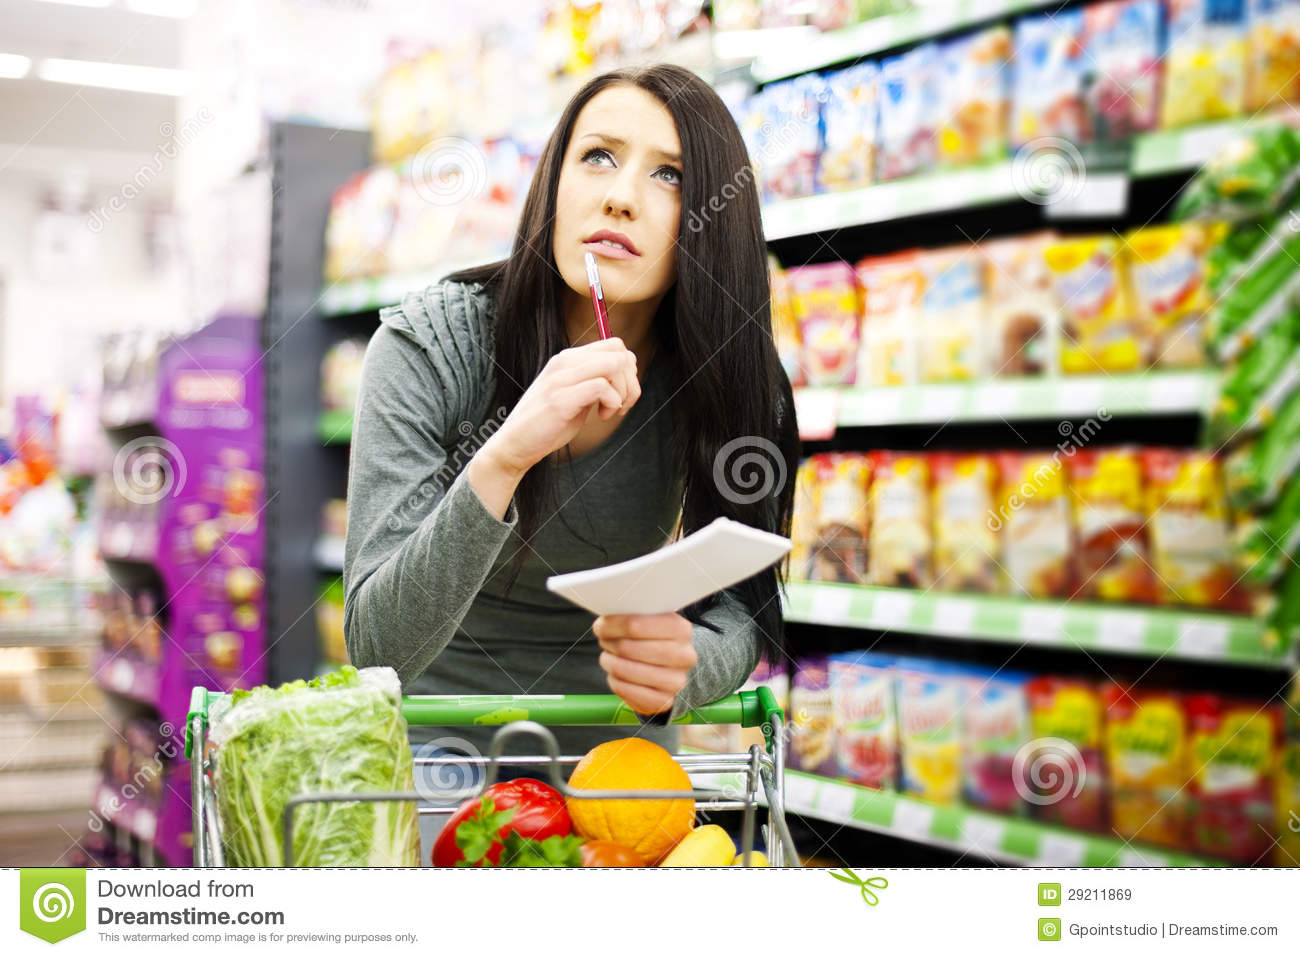 descriptive essay about shopping in a supermarket The unit supports teachers and pupils in writing a descriptive piece as preparation for the wjec english gcse paper 1 section b1 – descriptive writing.